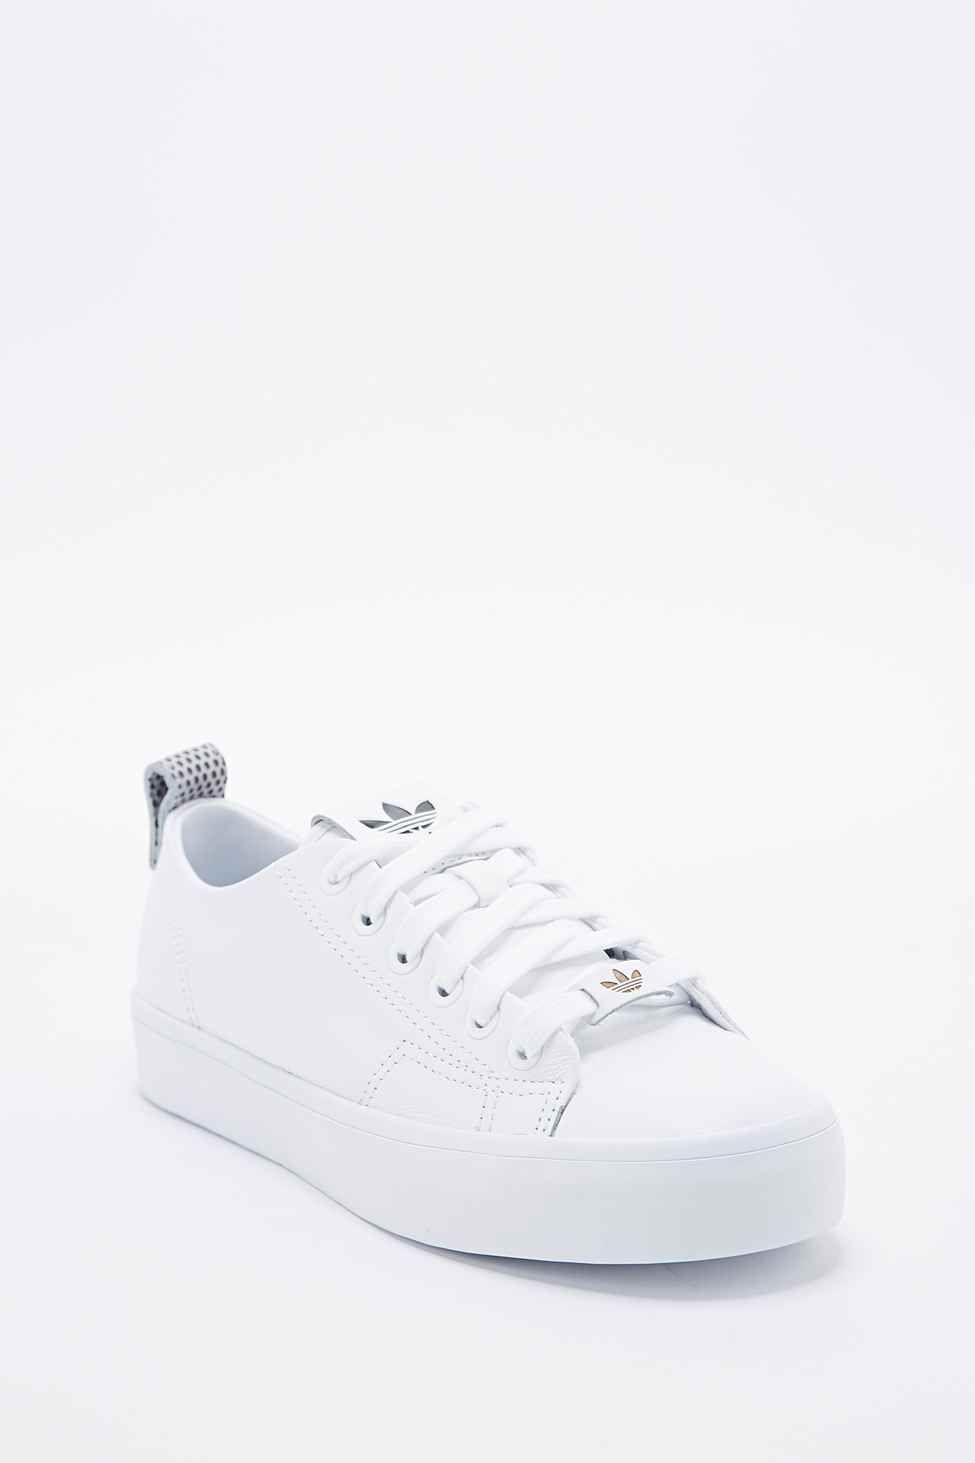 5411046f9a Adidas Honey 2.0 Low Trainers in White - Urban Outfitters